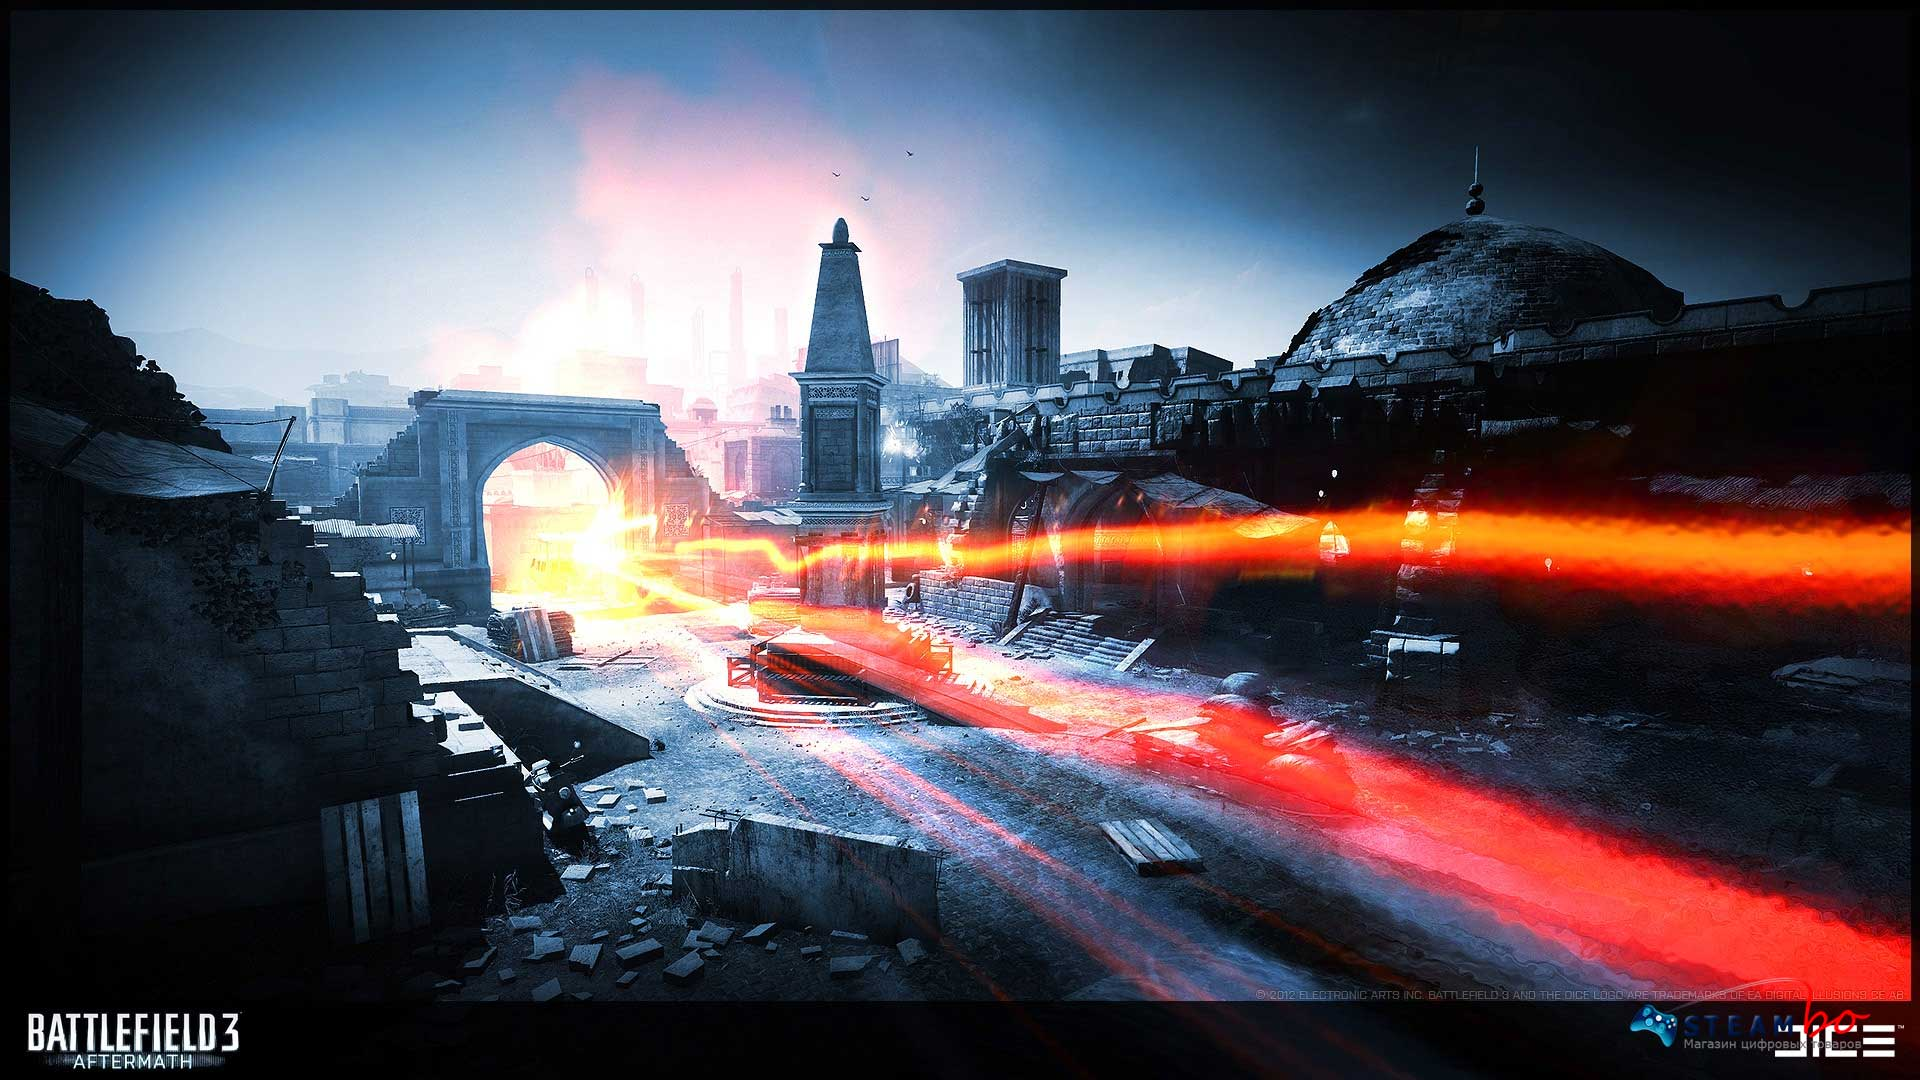 Battlefield 3: Aftermath Region Free (Origin key)